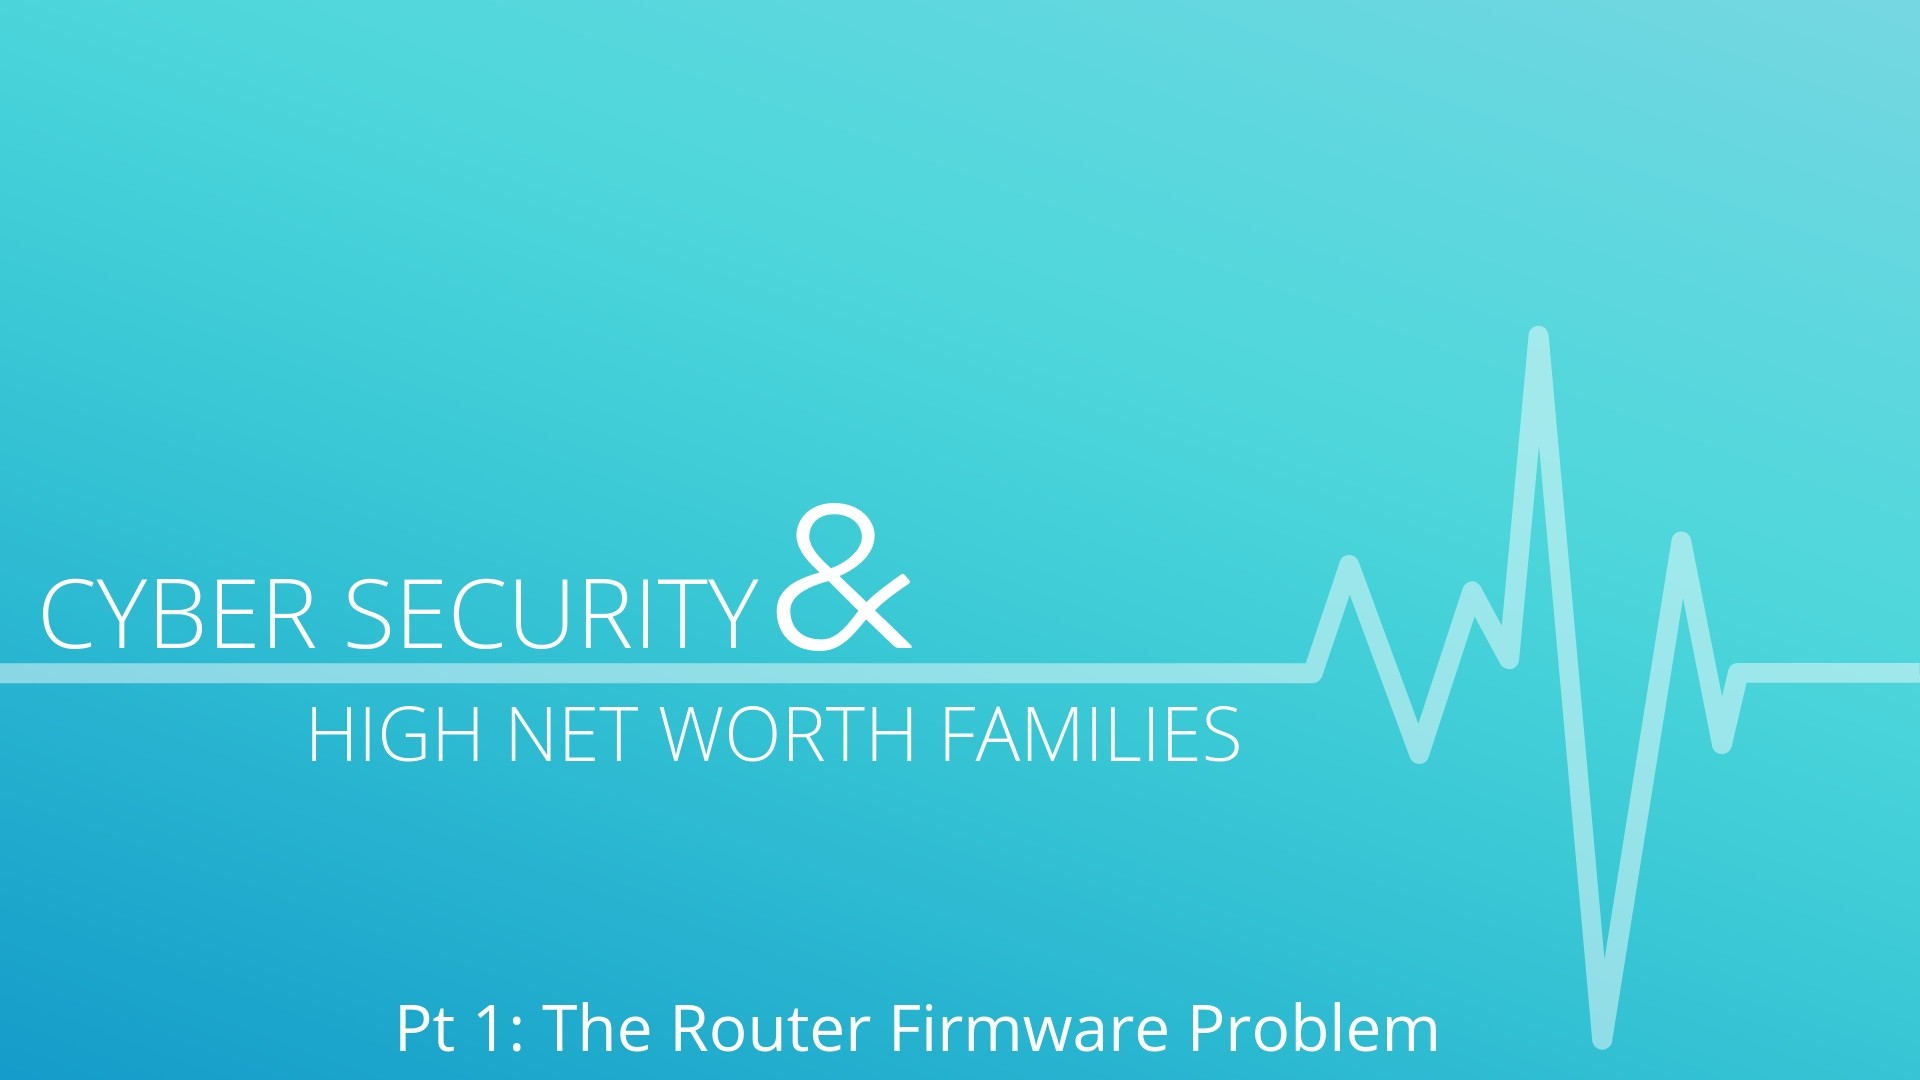 Cyber Security can greatly affect high net worth individuals and their families. Out of date firmware on a router can leave a home open to hackers and data theft.